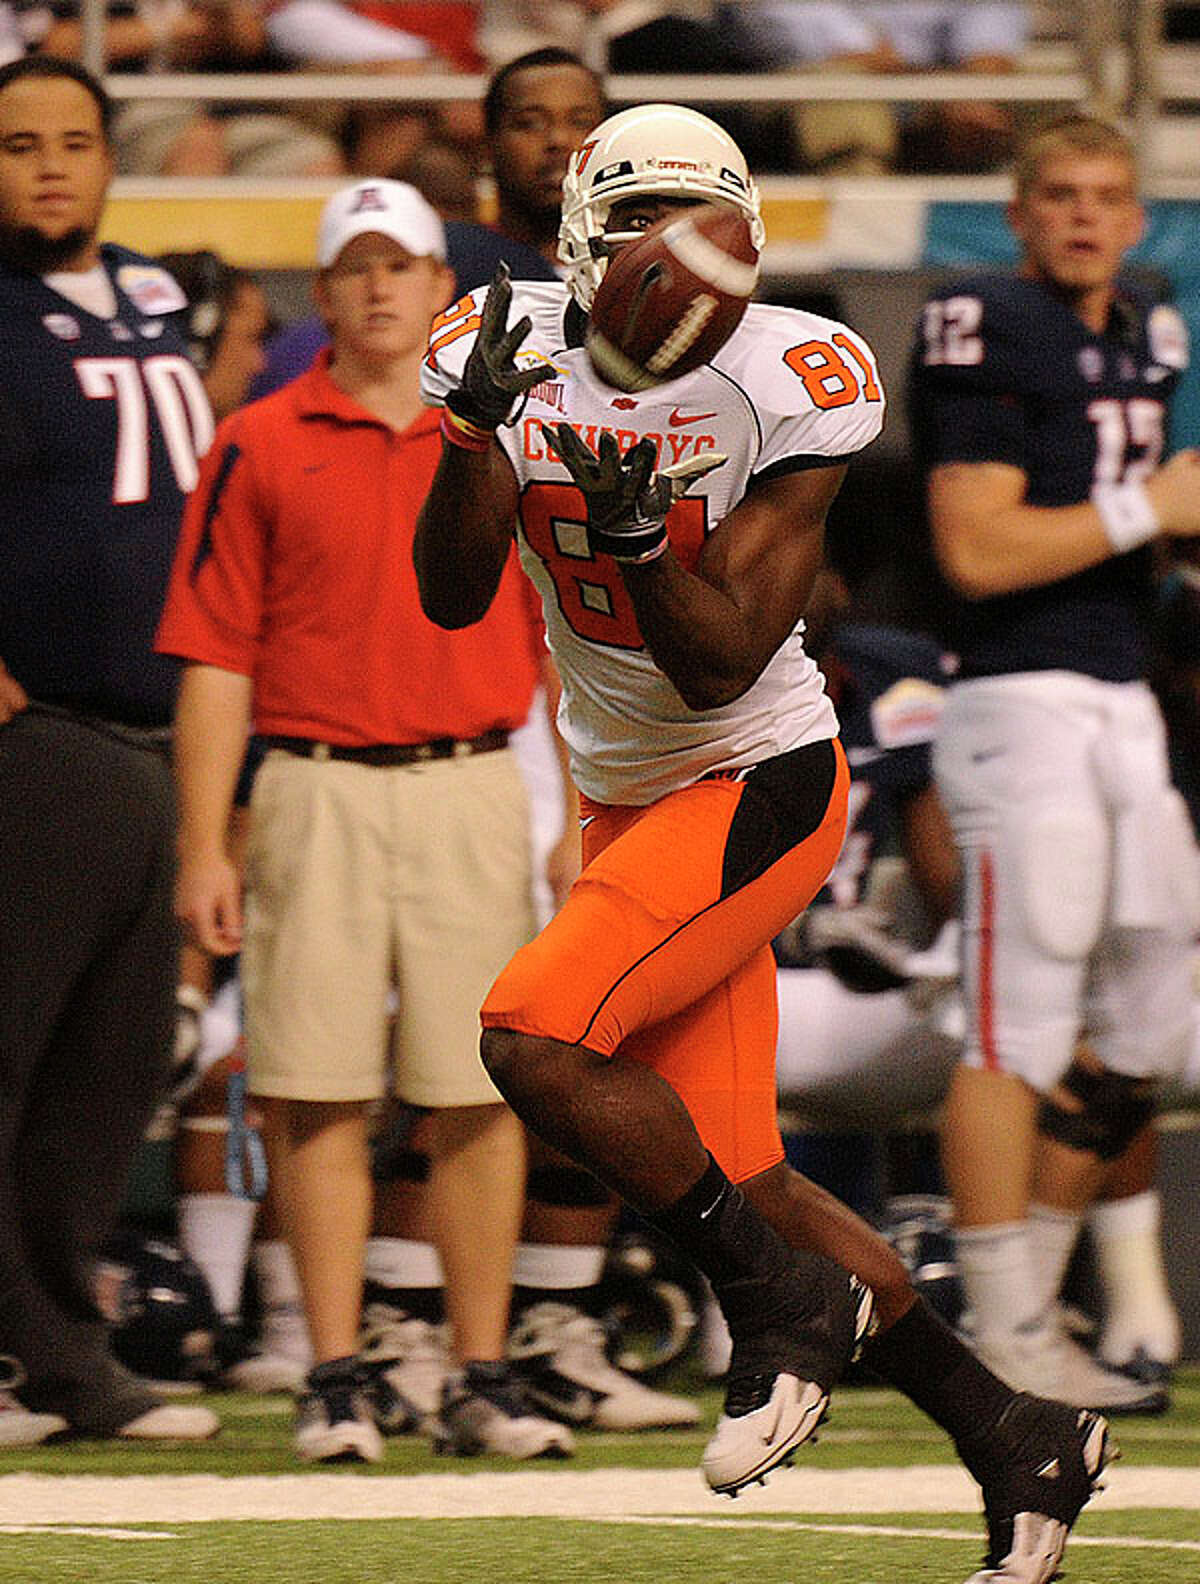 Oklahoma State receiver Justin Blackmon hauls in a first-quarter touchdown pass against Arizona during the Valero Alamo Bowl in the Alamodome on Wednesday, Dec. 29, 2010. BILLY CALZADA / gcalzada@express-news.net